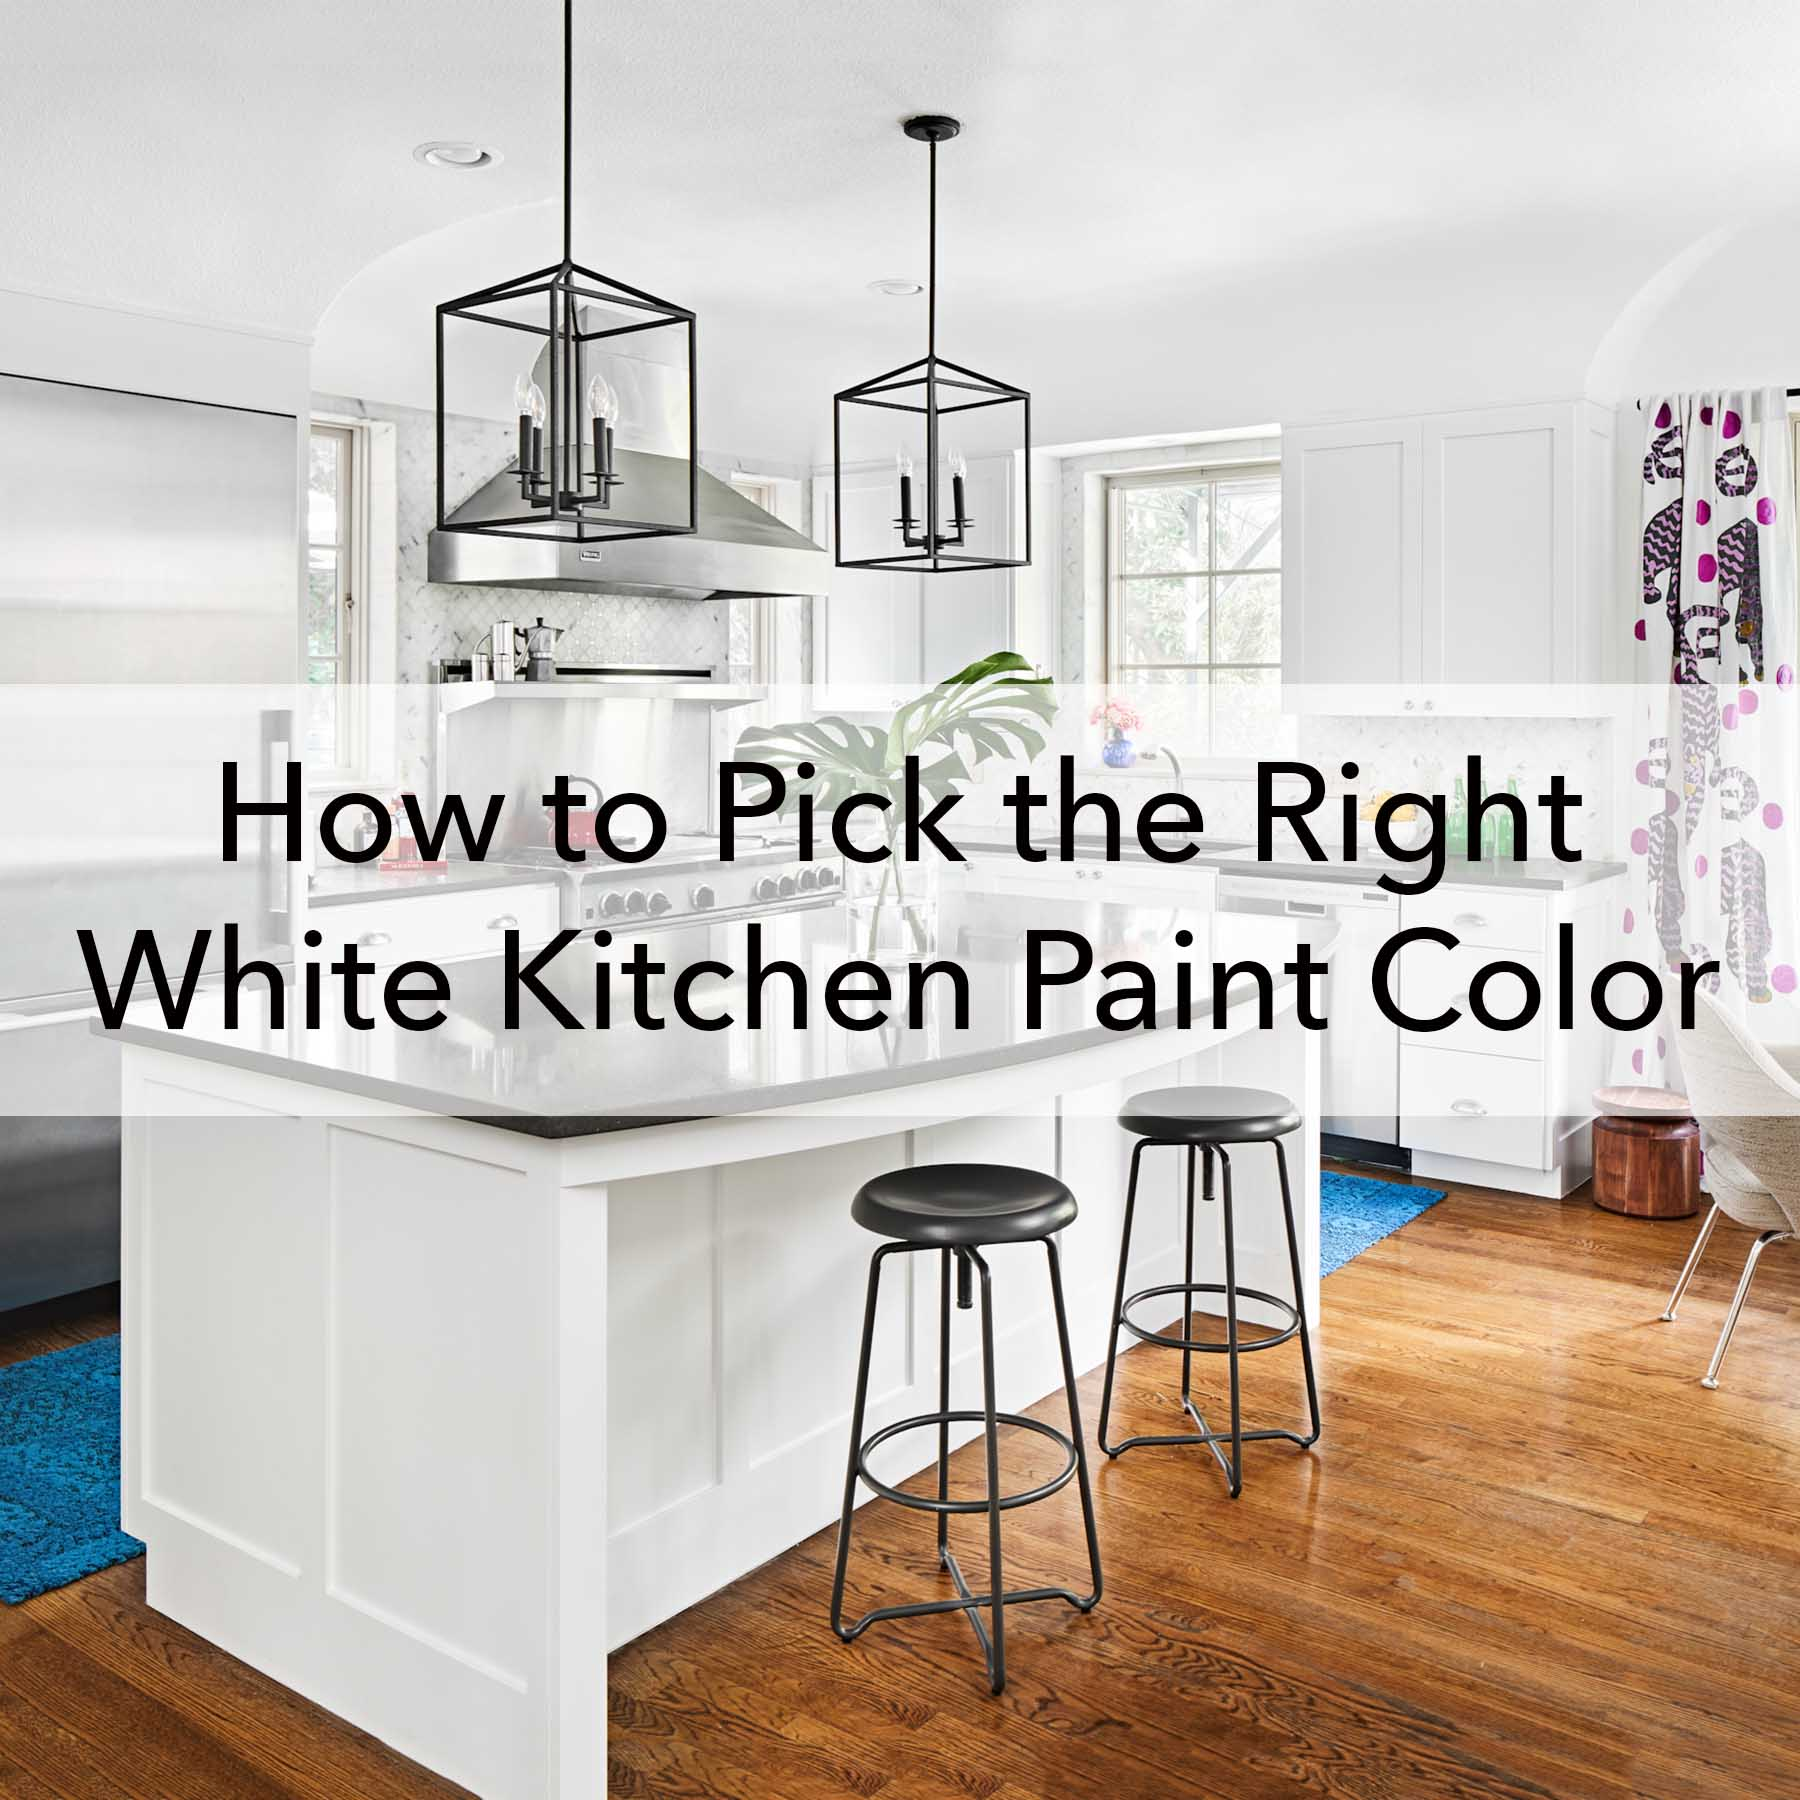 White Kitchen Paint Color blog - how to pick, Paper Moon Painting